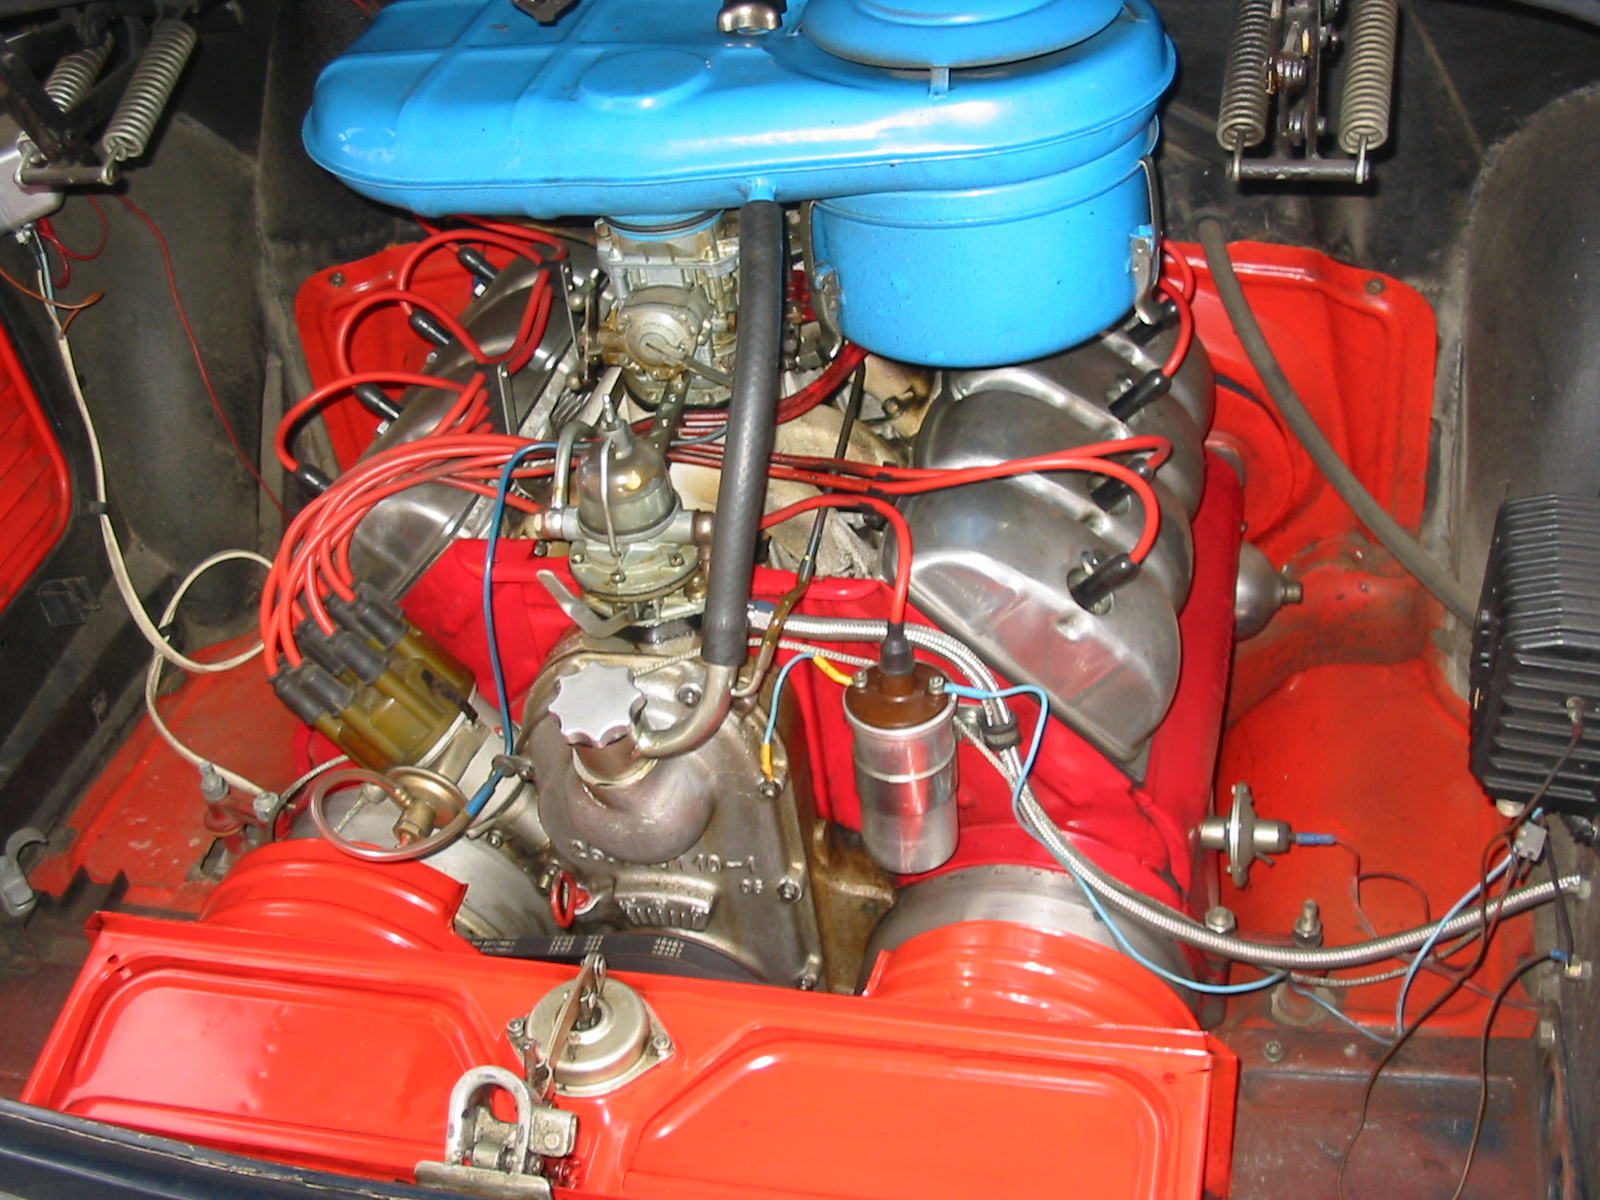 Despite the 2.5 litre alloy air cooled V8 being mounted behind the rear axle line the Tatra 603 still managed to achieve a 47/53 front to rear weight distribution when loaded. (Picture courtesy Wikimedia)